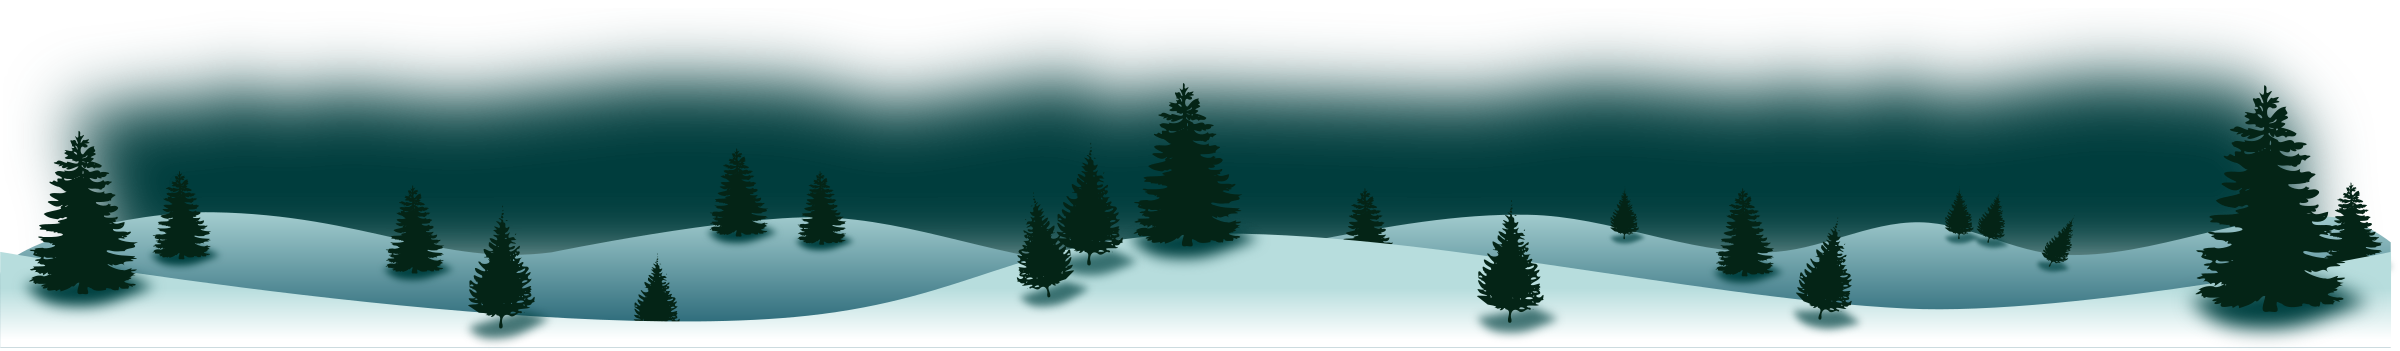 Panorama clipart forest Panorama Winter Winter Panorama Forest